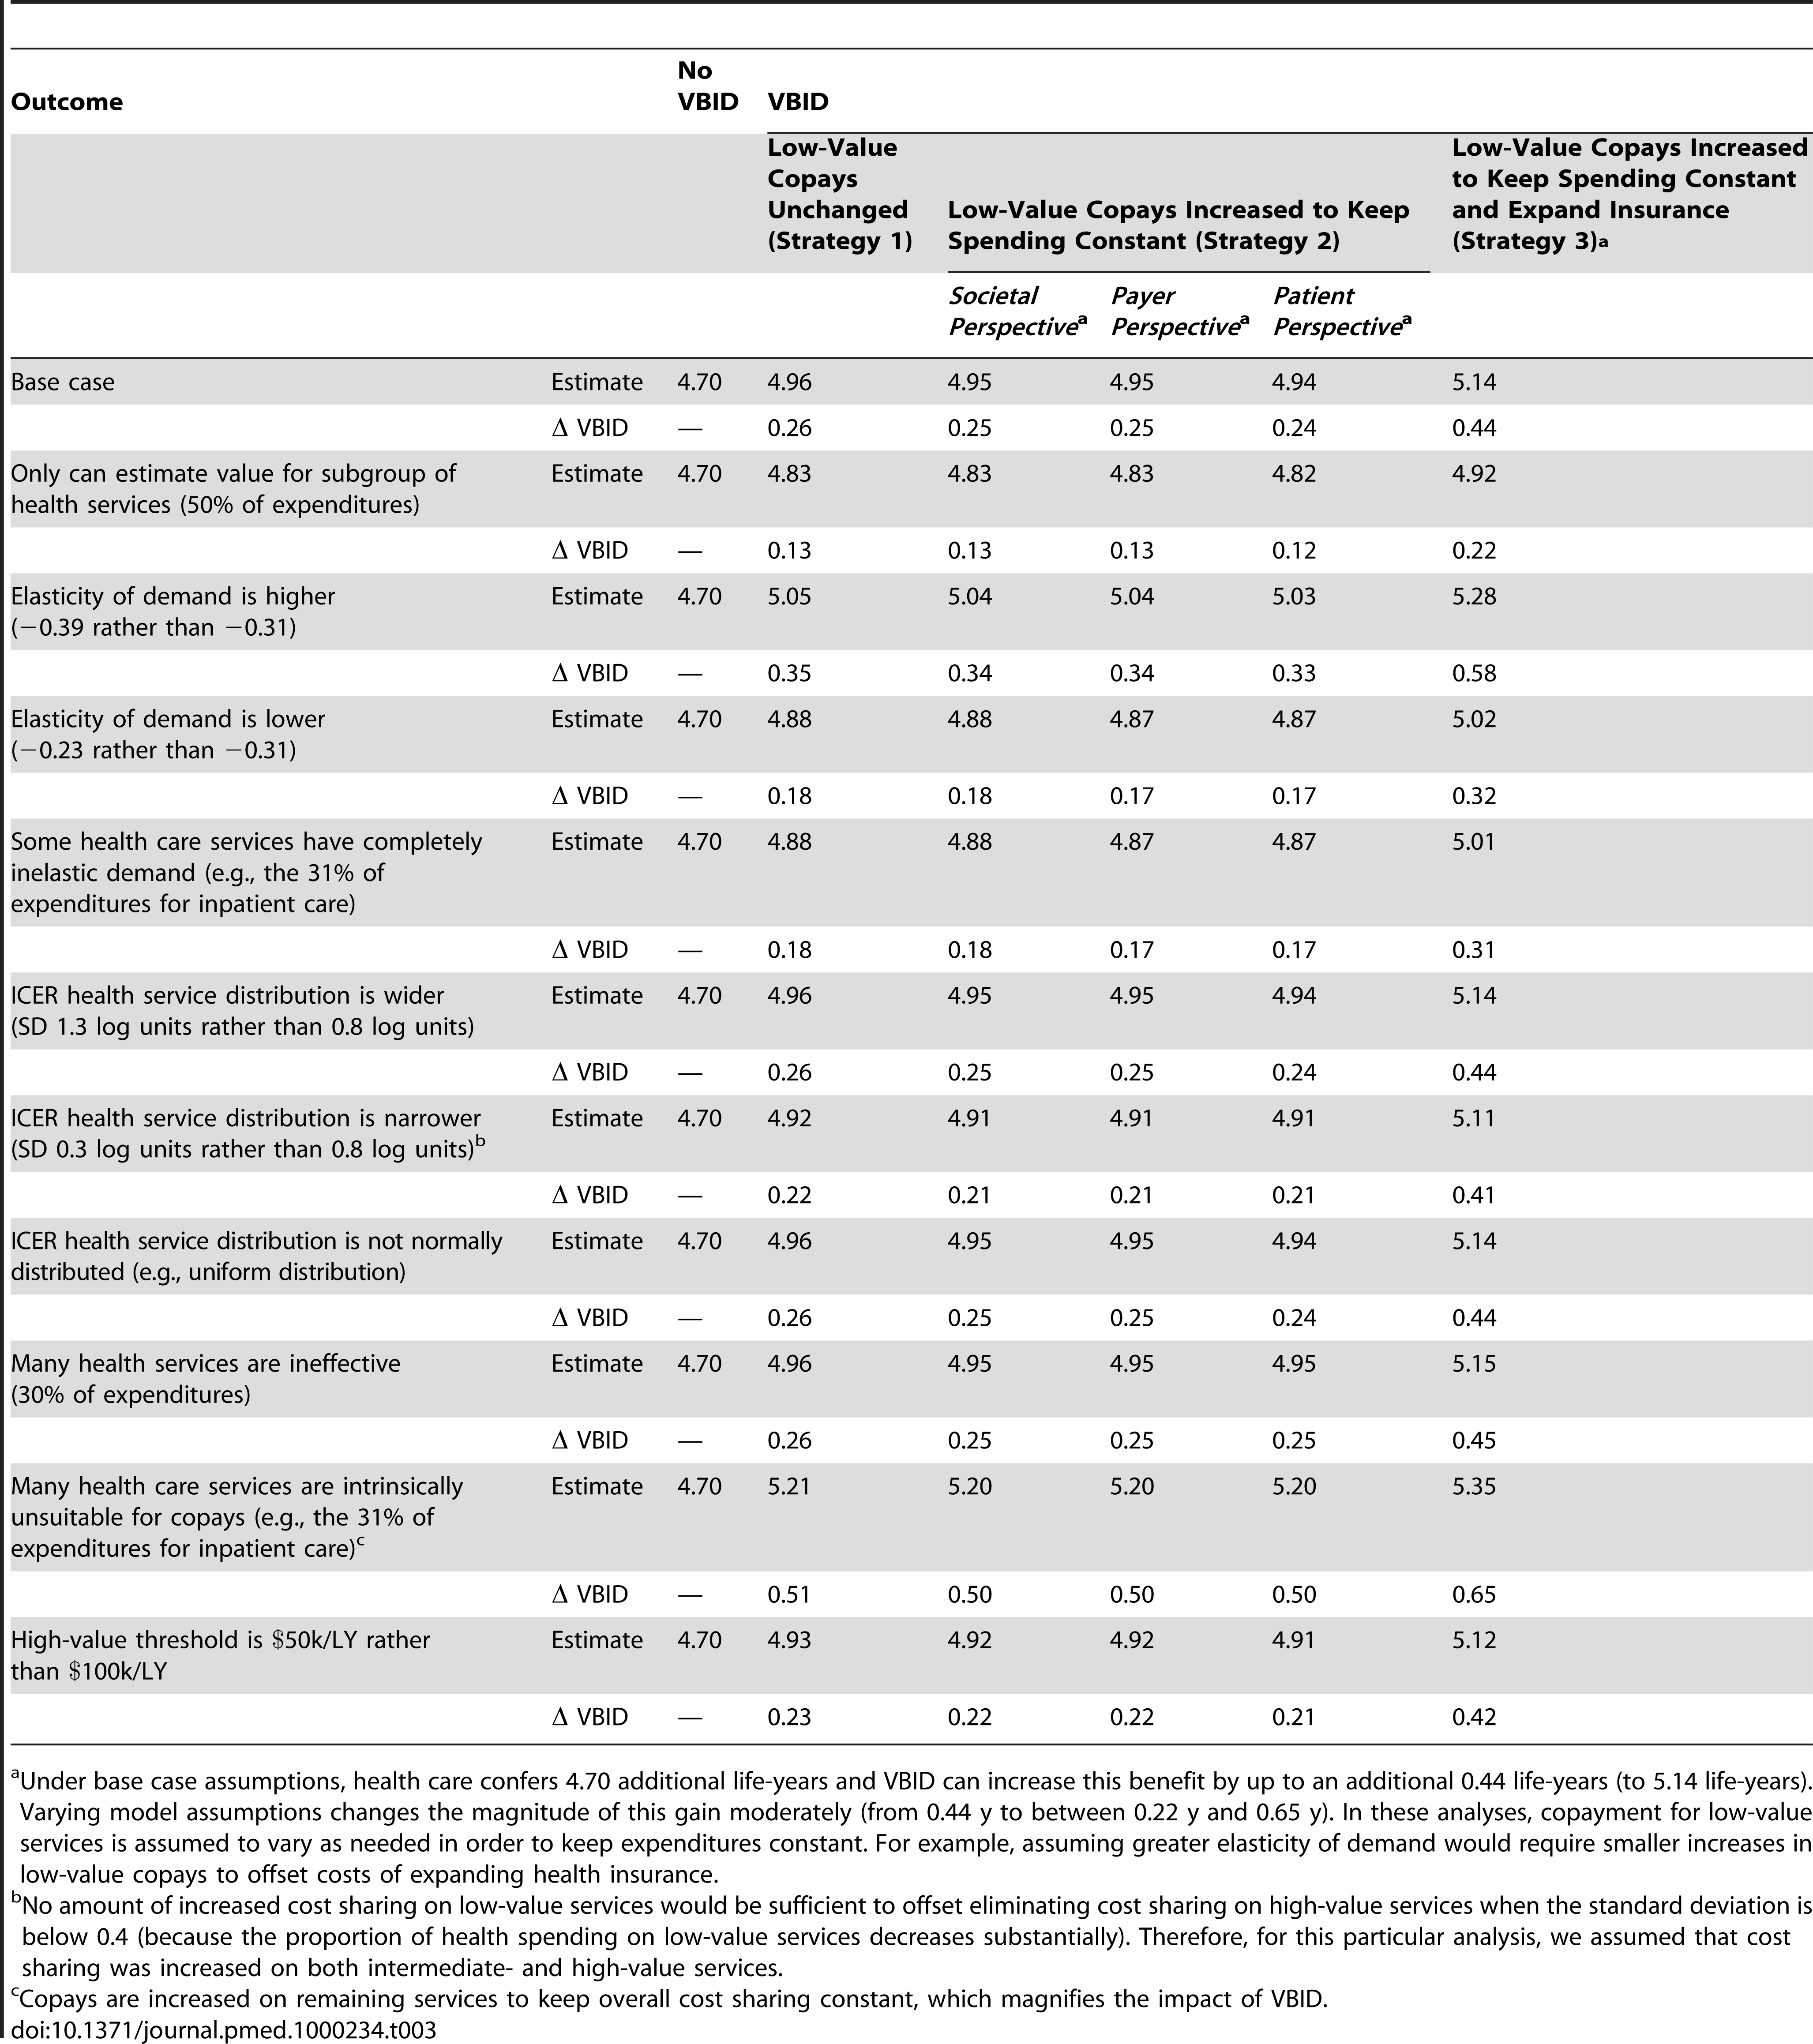 Sensitivity analyses of incremental life expectancy gain from health care, varying assumptions across plausible ranges.